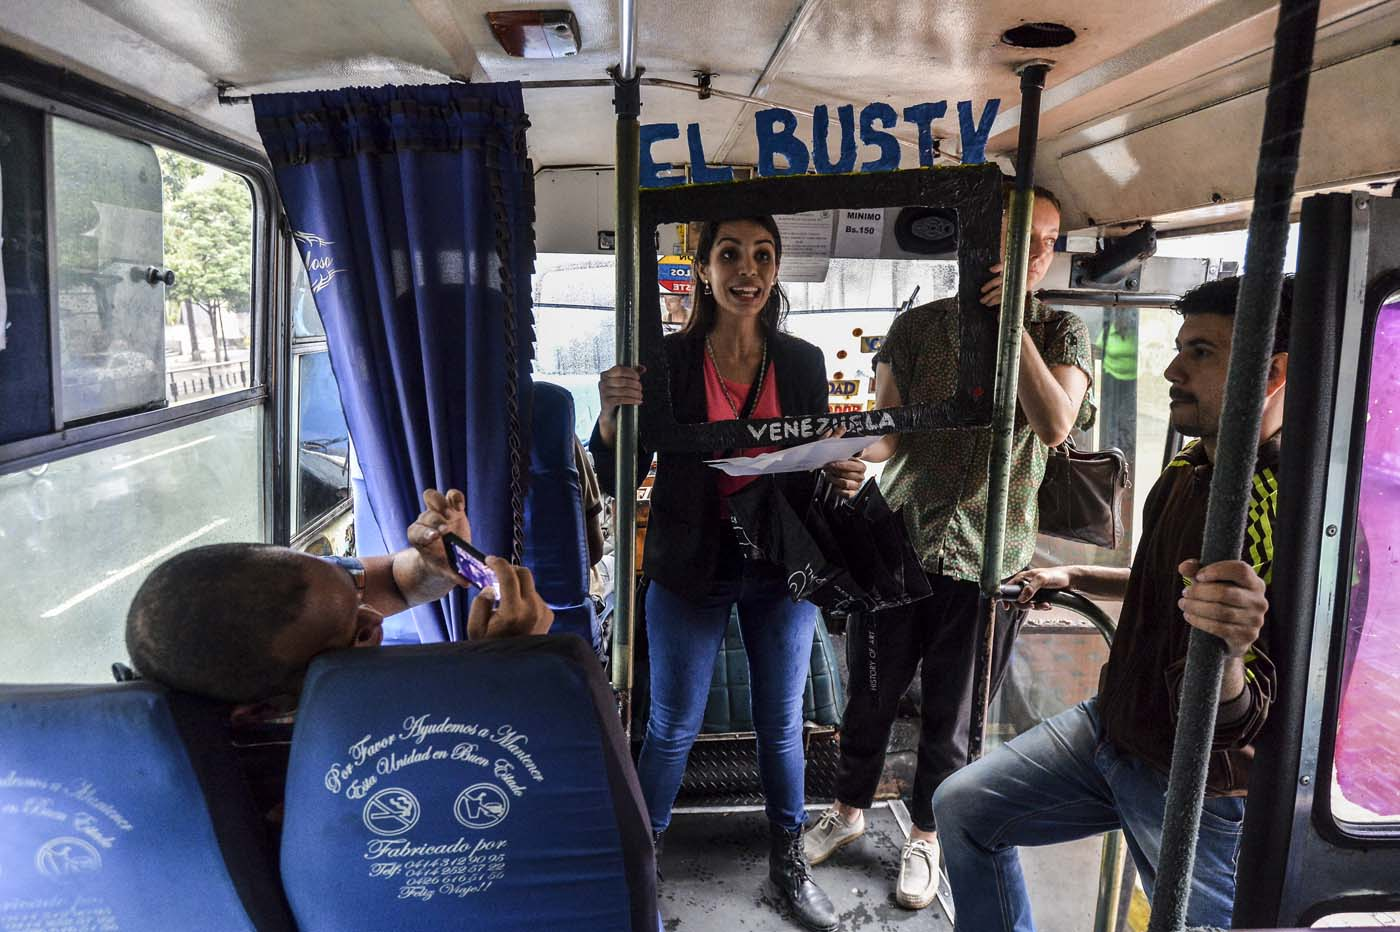 Maria Gabriela Fernandez (C) gives a presentation of the Bus TV news in Caracas, Venezuela, on June 6, 2017. A group of young Venezuelan reporters board buses to present the news, as part of a project to keep people informed in the face of what the opposition and the national journalists' union describe as censorship by the government of Nicolas Maduro. / AFP PHOTO / LUIS ROBAYO